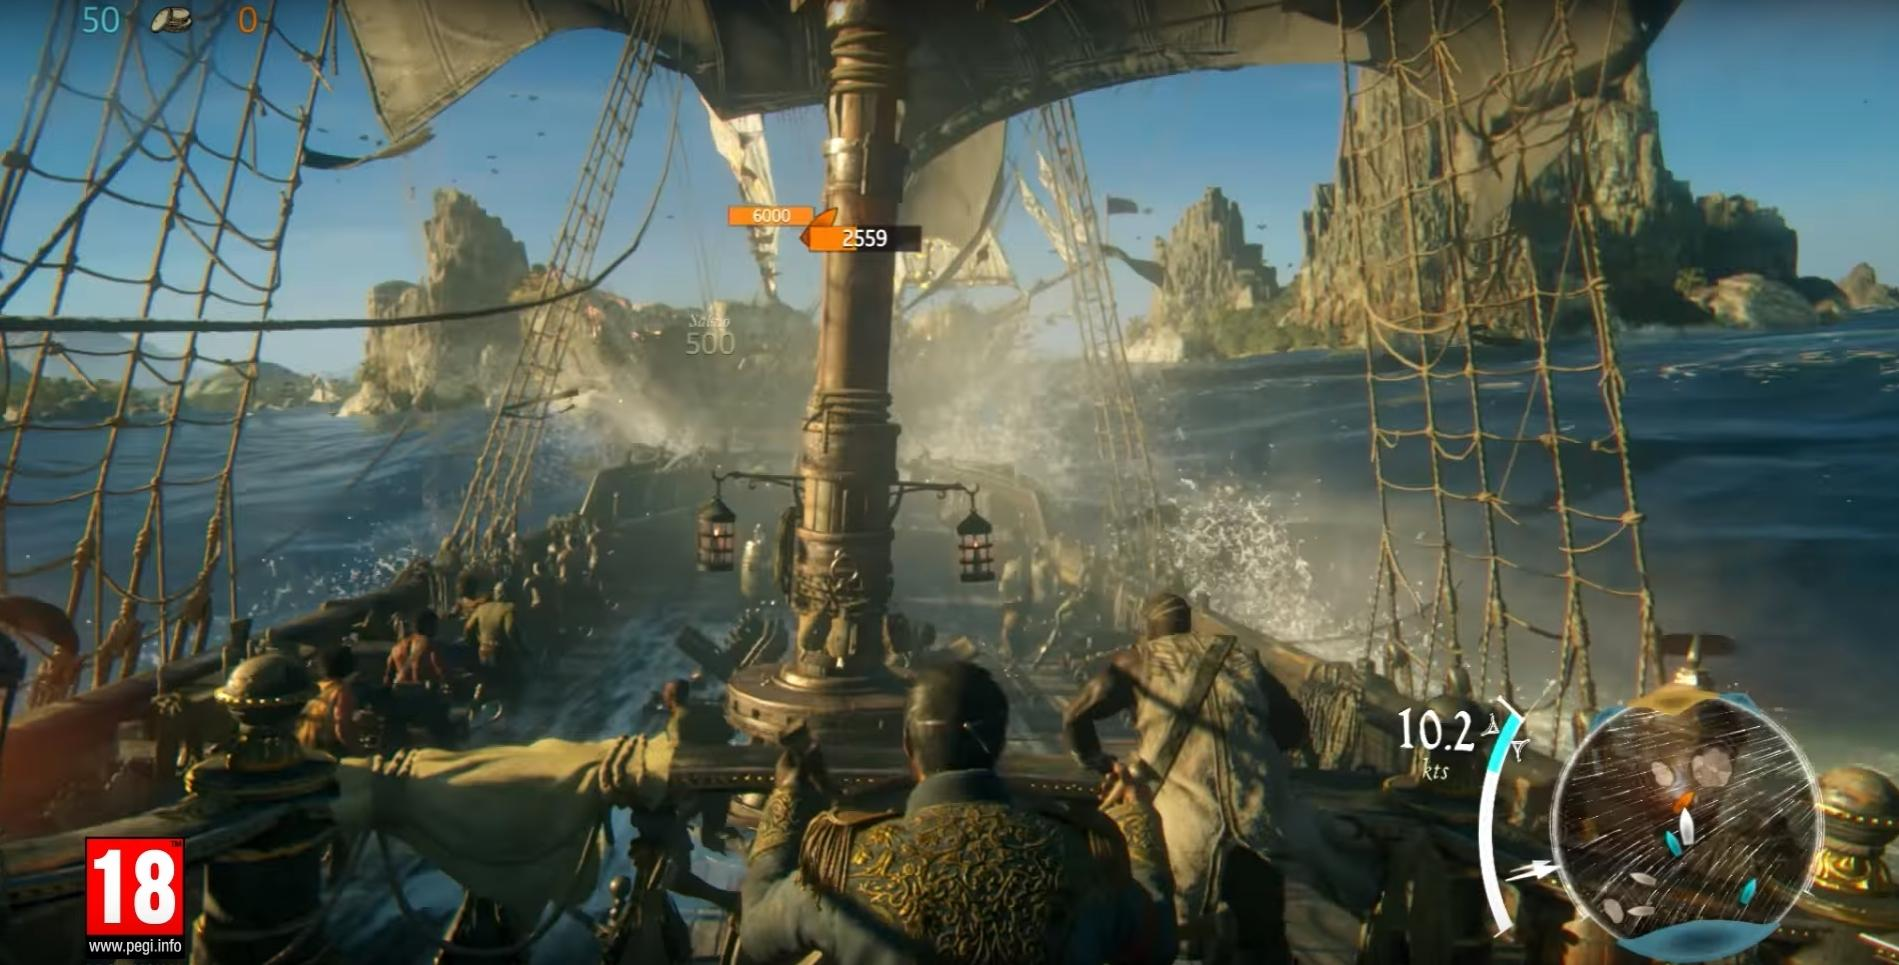 Black Flag gets MMO treatment in Skull and Bones